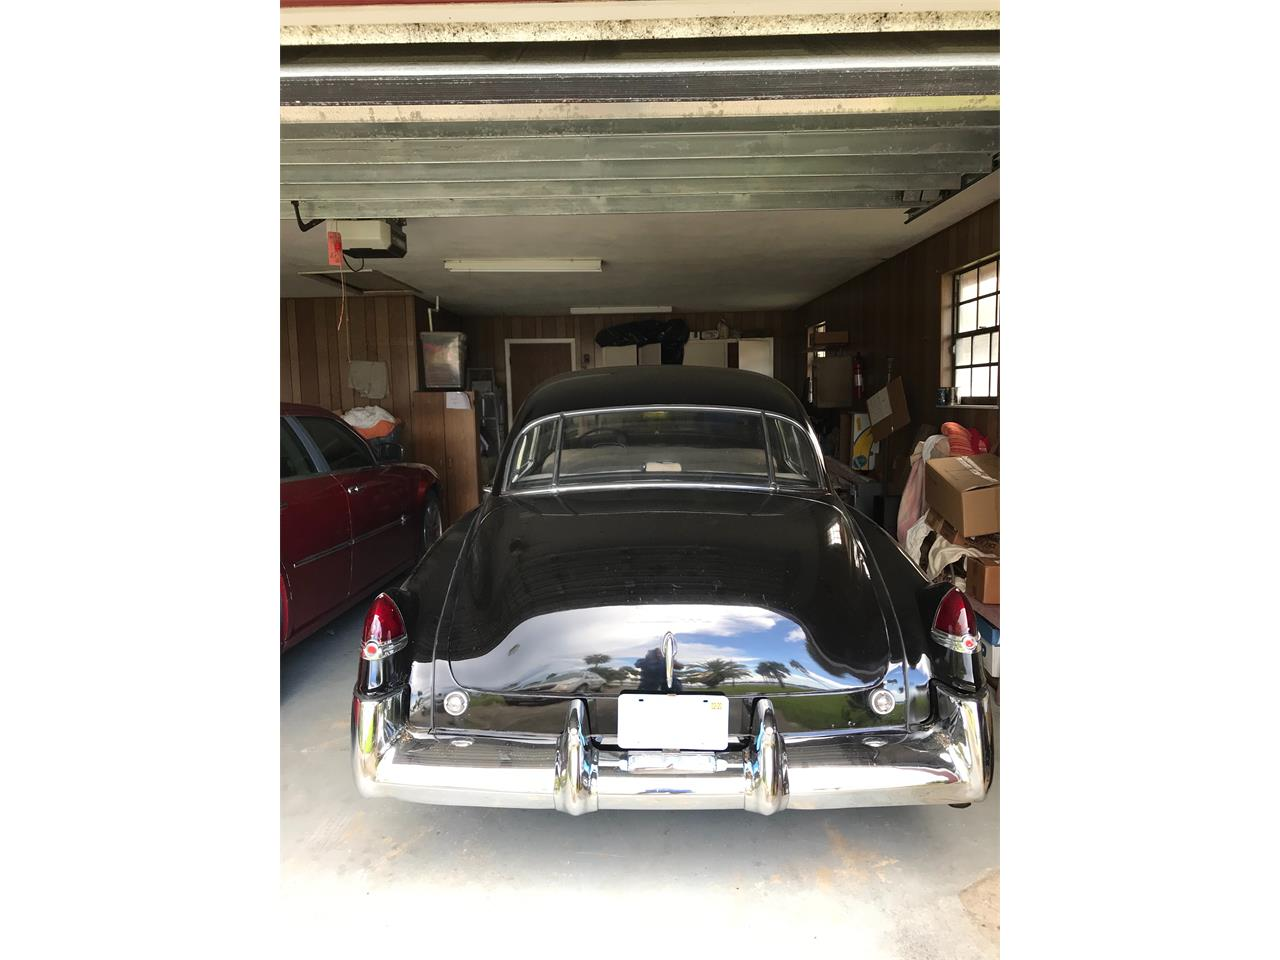 1949 Cadillac 4-Dr Sedan for sale in Land O Lakes, FL – photo 14